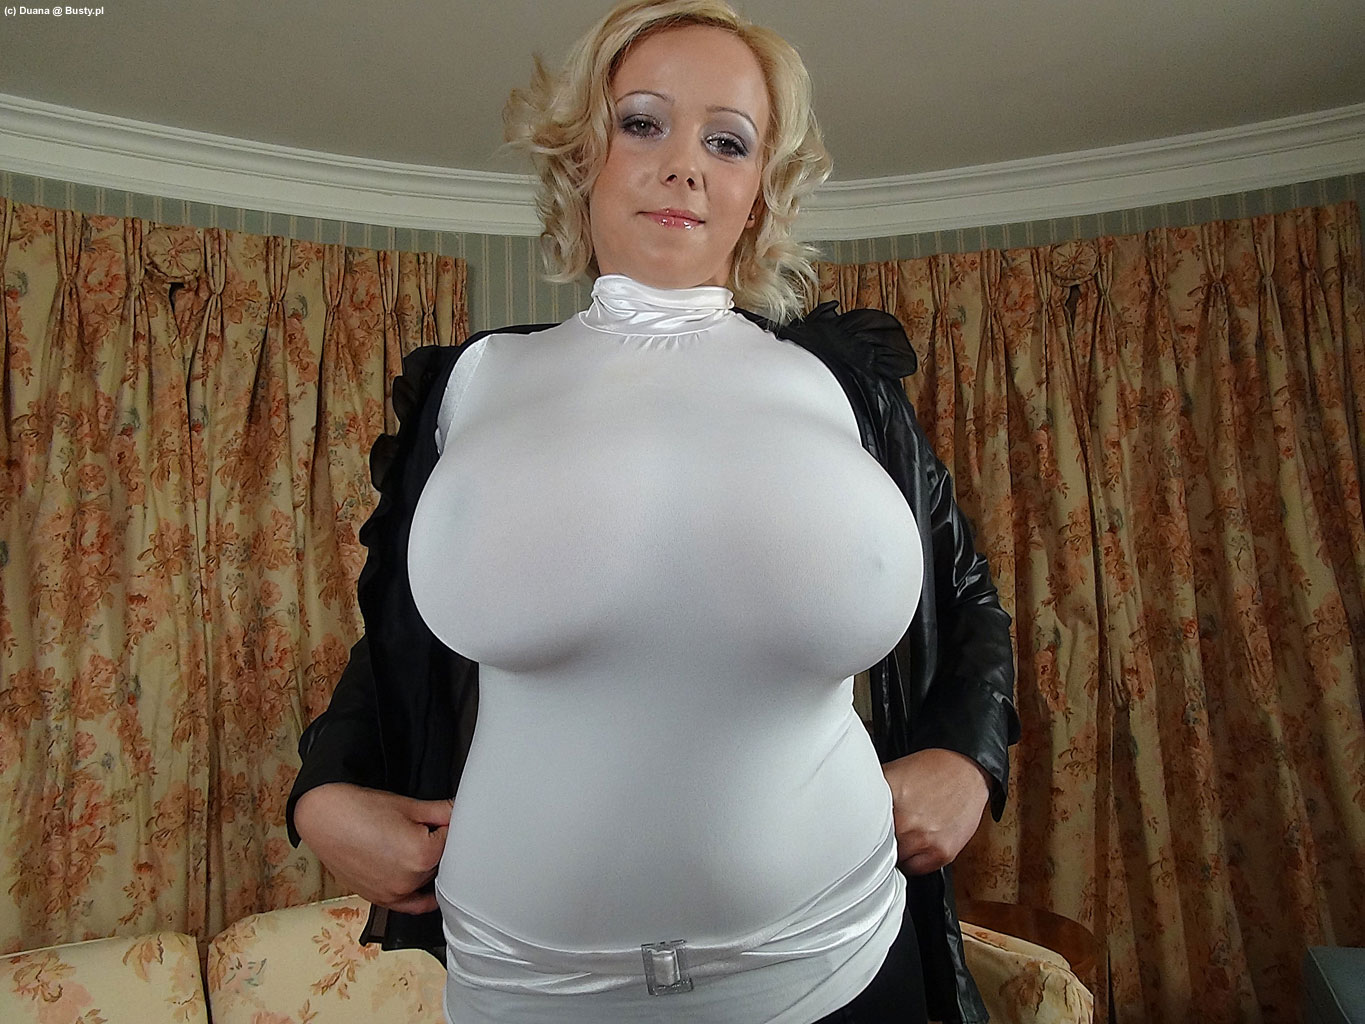 Free Busty Tight Tops